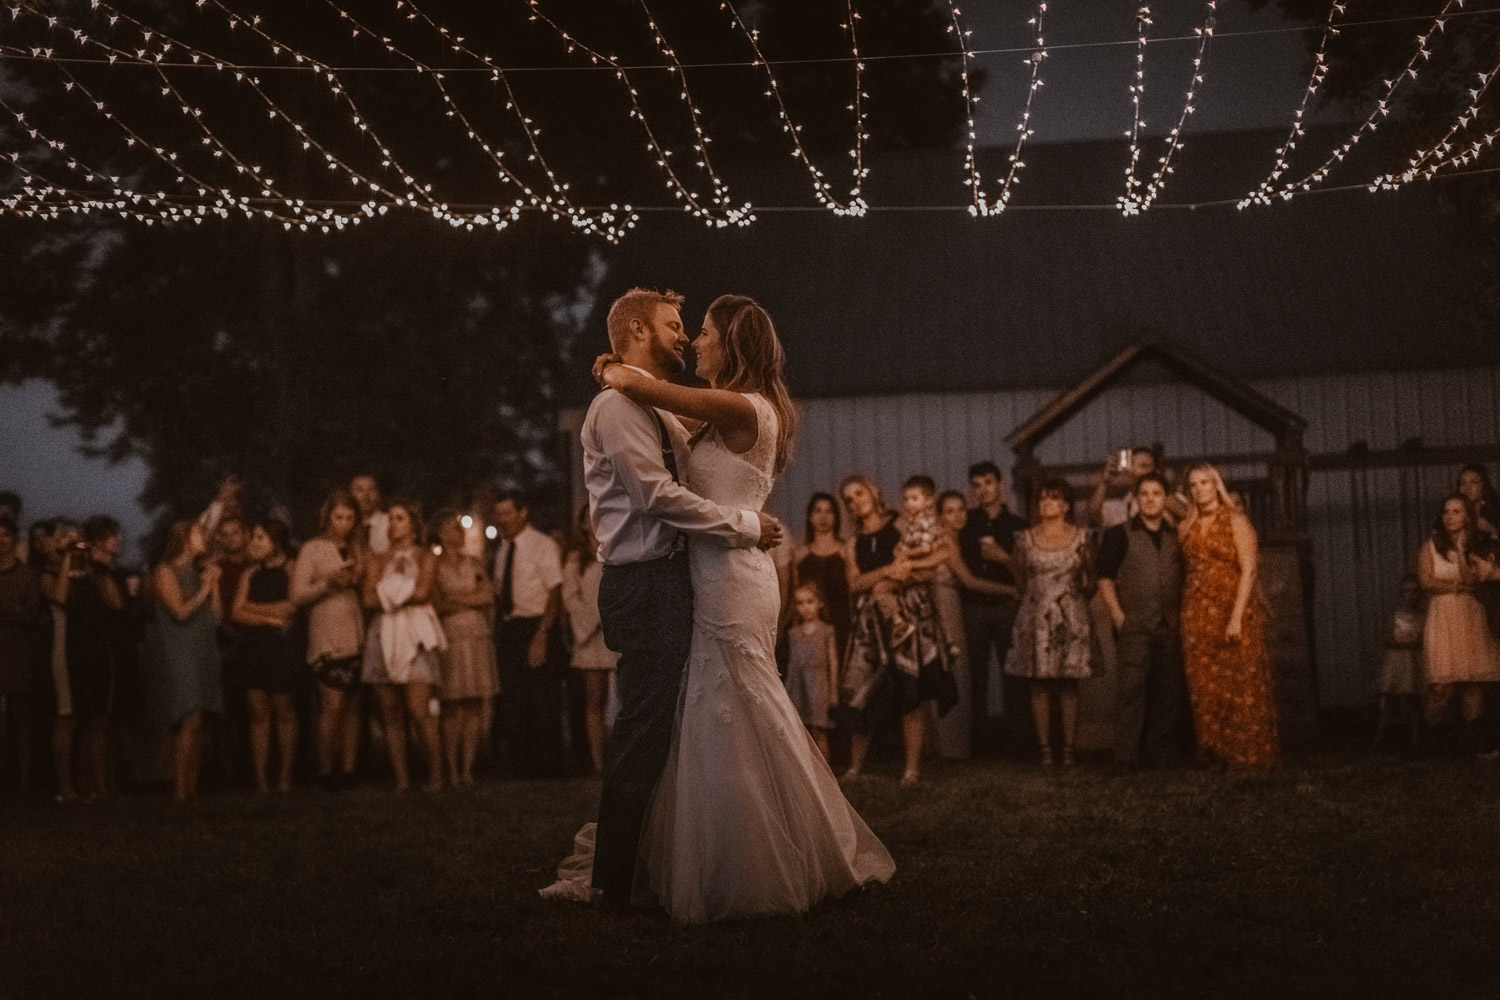 Tabitha Roth Schweizer Hochzeitsfotografin  USA Colorado destination wedding outdoor  first dance Tanz Brautpaar